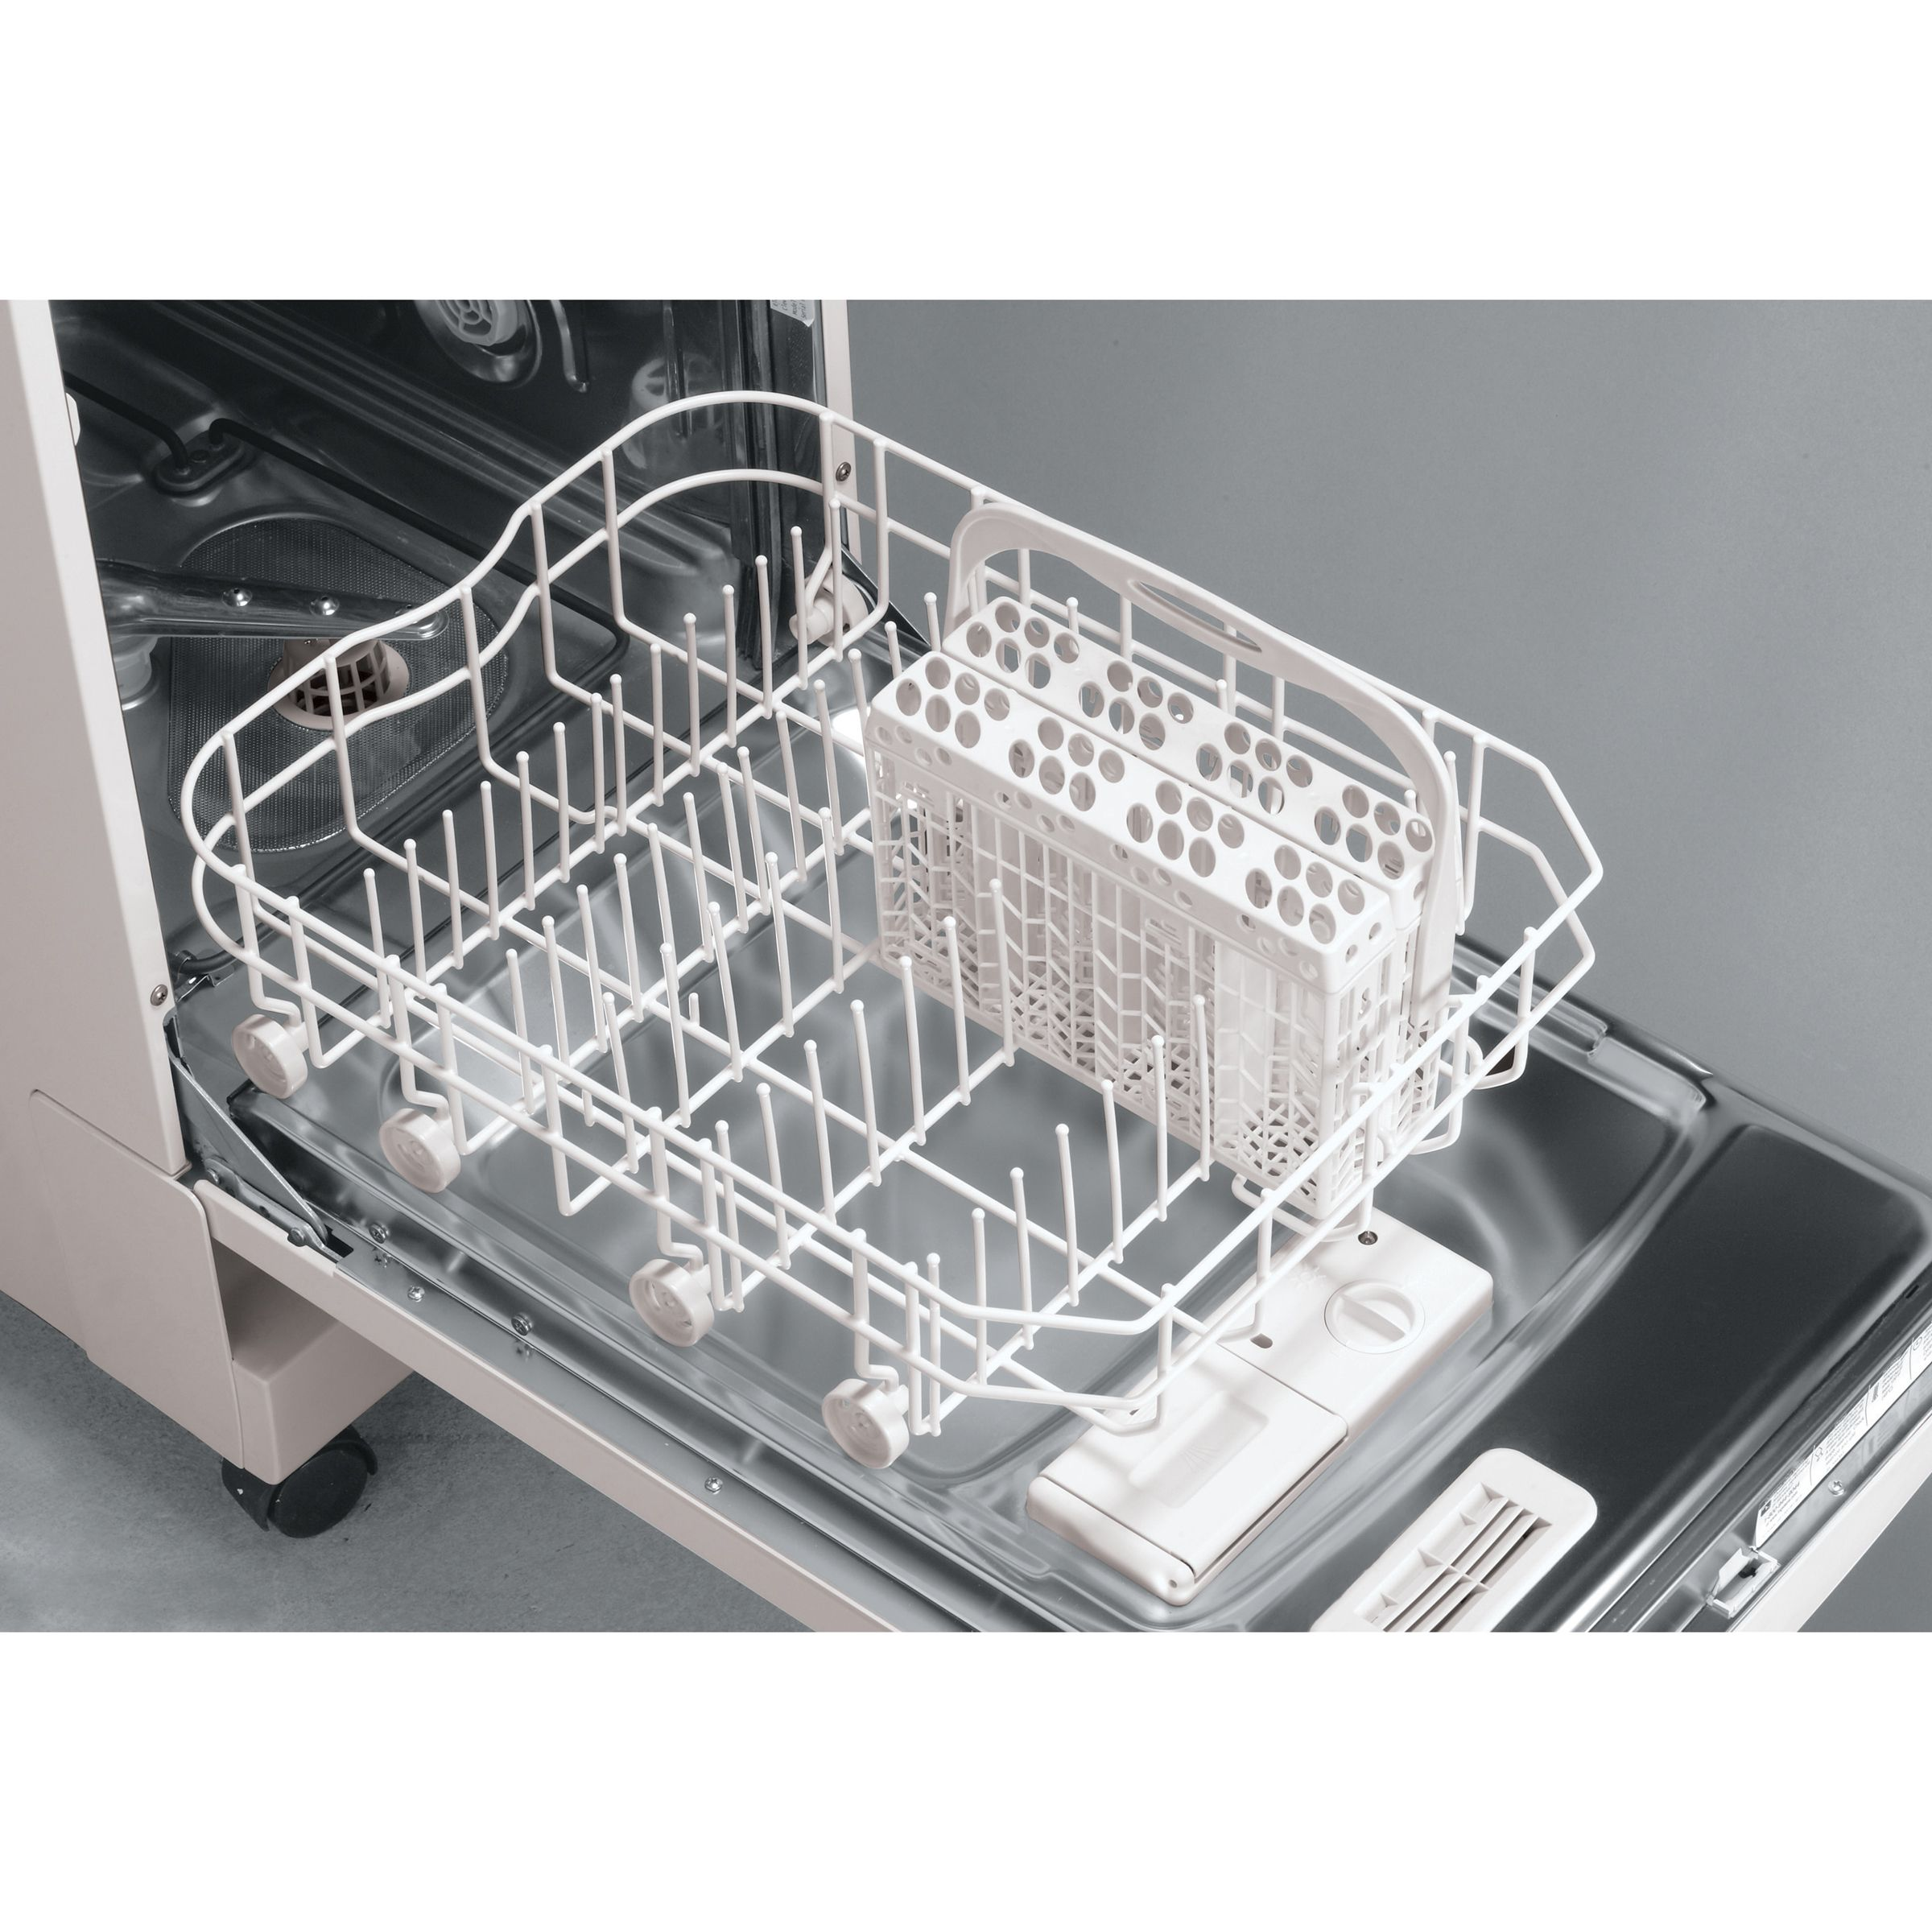 "Kenmore 18"" Portable Dishwasher, Black (1441)"